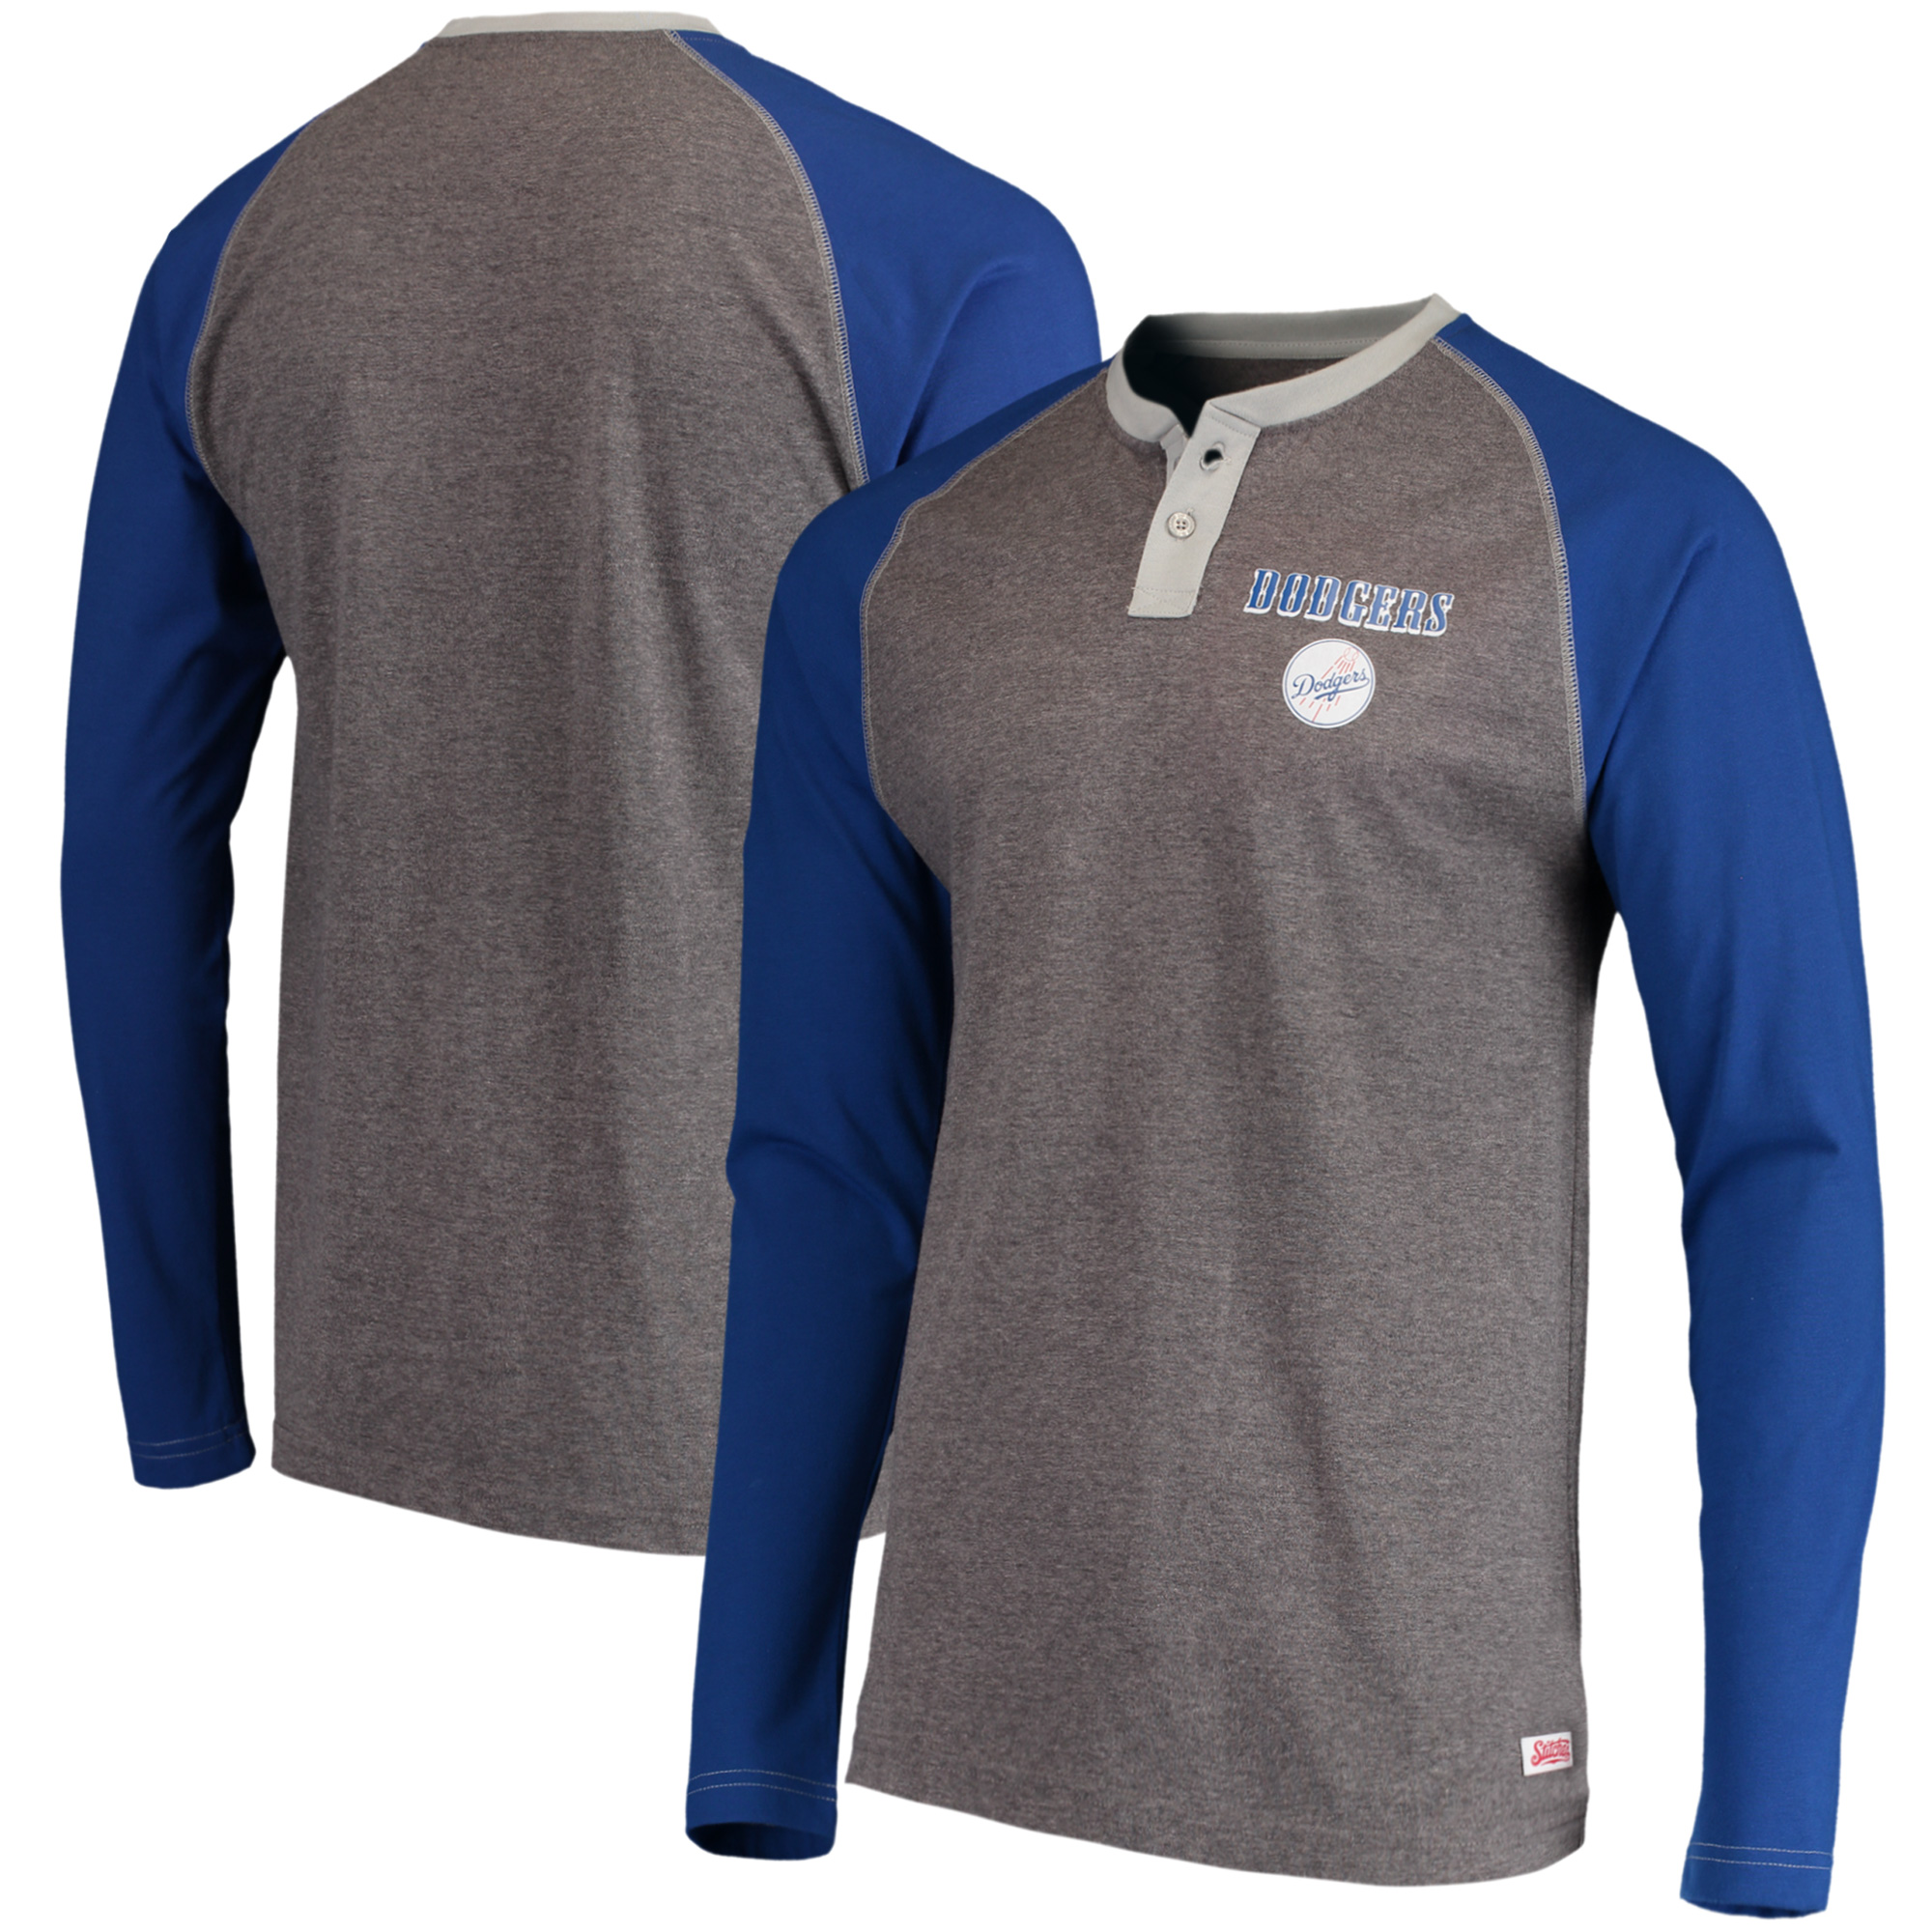 Los Angeles Dodgers Stitches Home Run Long Sleeve Henley T-Shirt - Heathered Gray/Royal